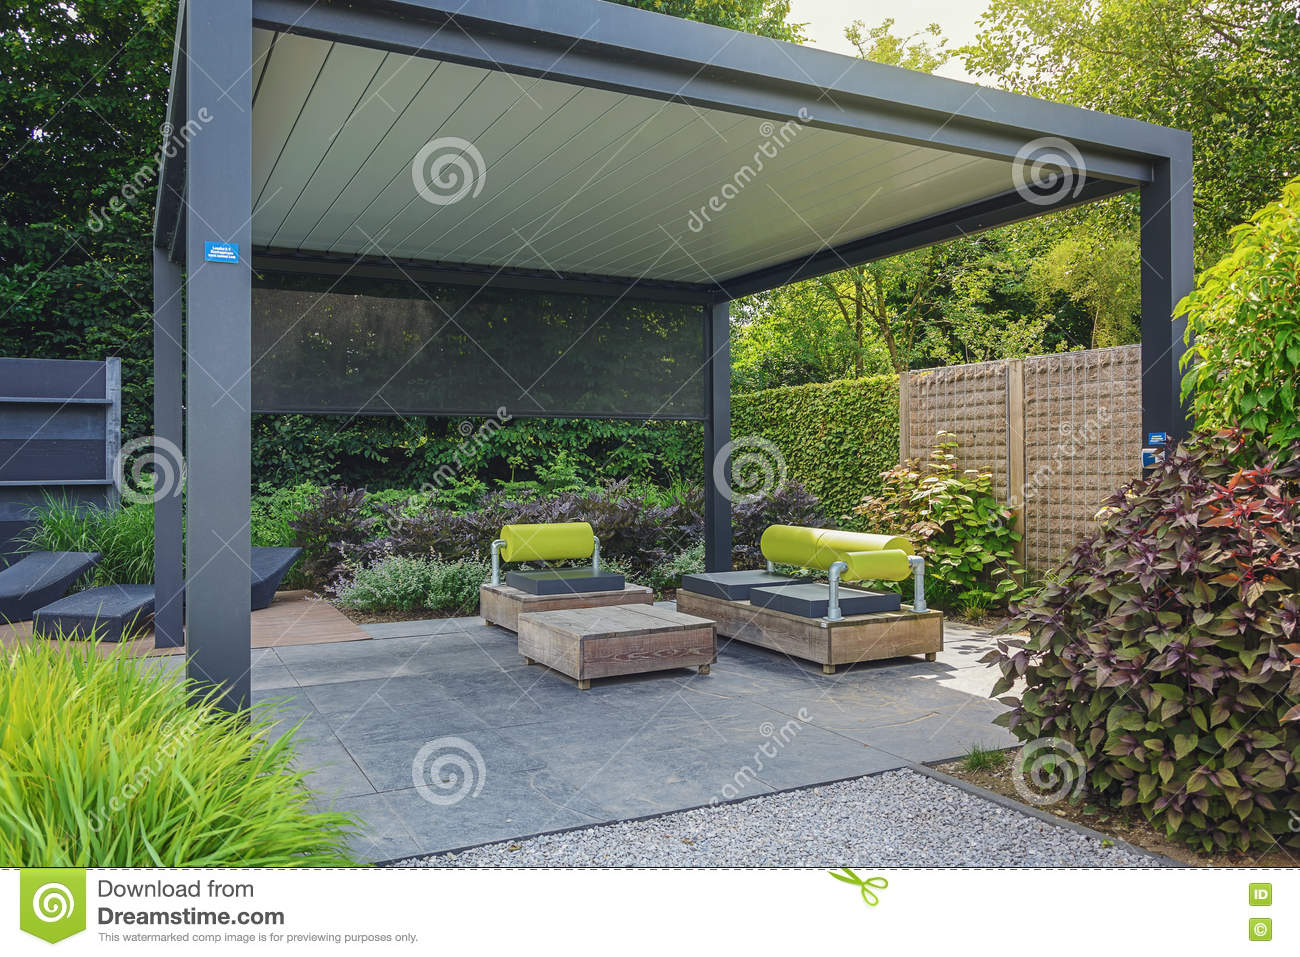 Trendy Sunloungers And Overhang With Trendy Garden